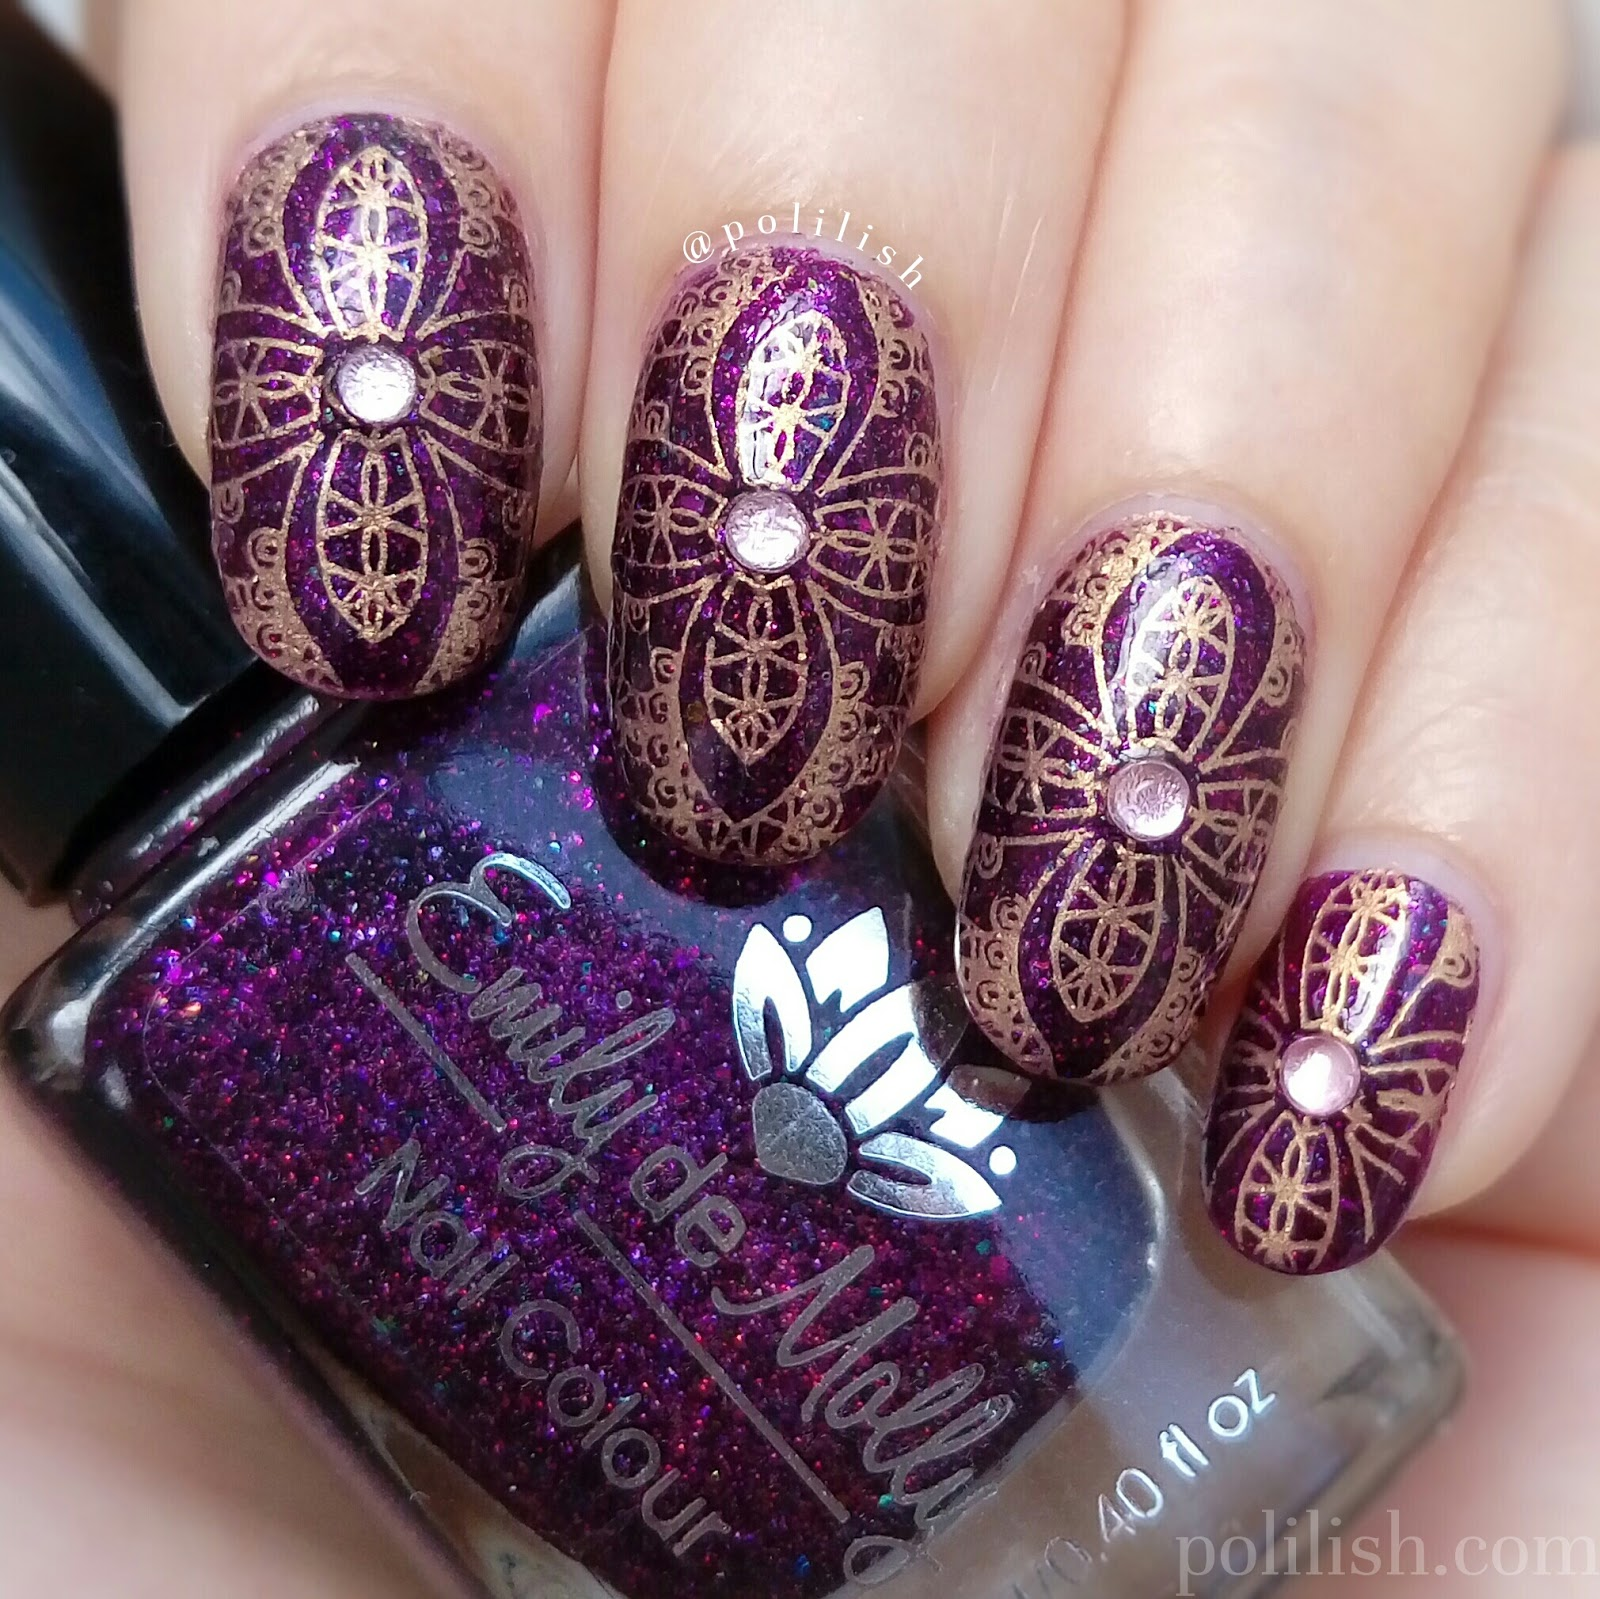 Polilish nail art ornate nail art with emily de molly calibrated and bundle monster festival plate prinsesfo Choice Image